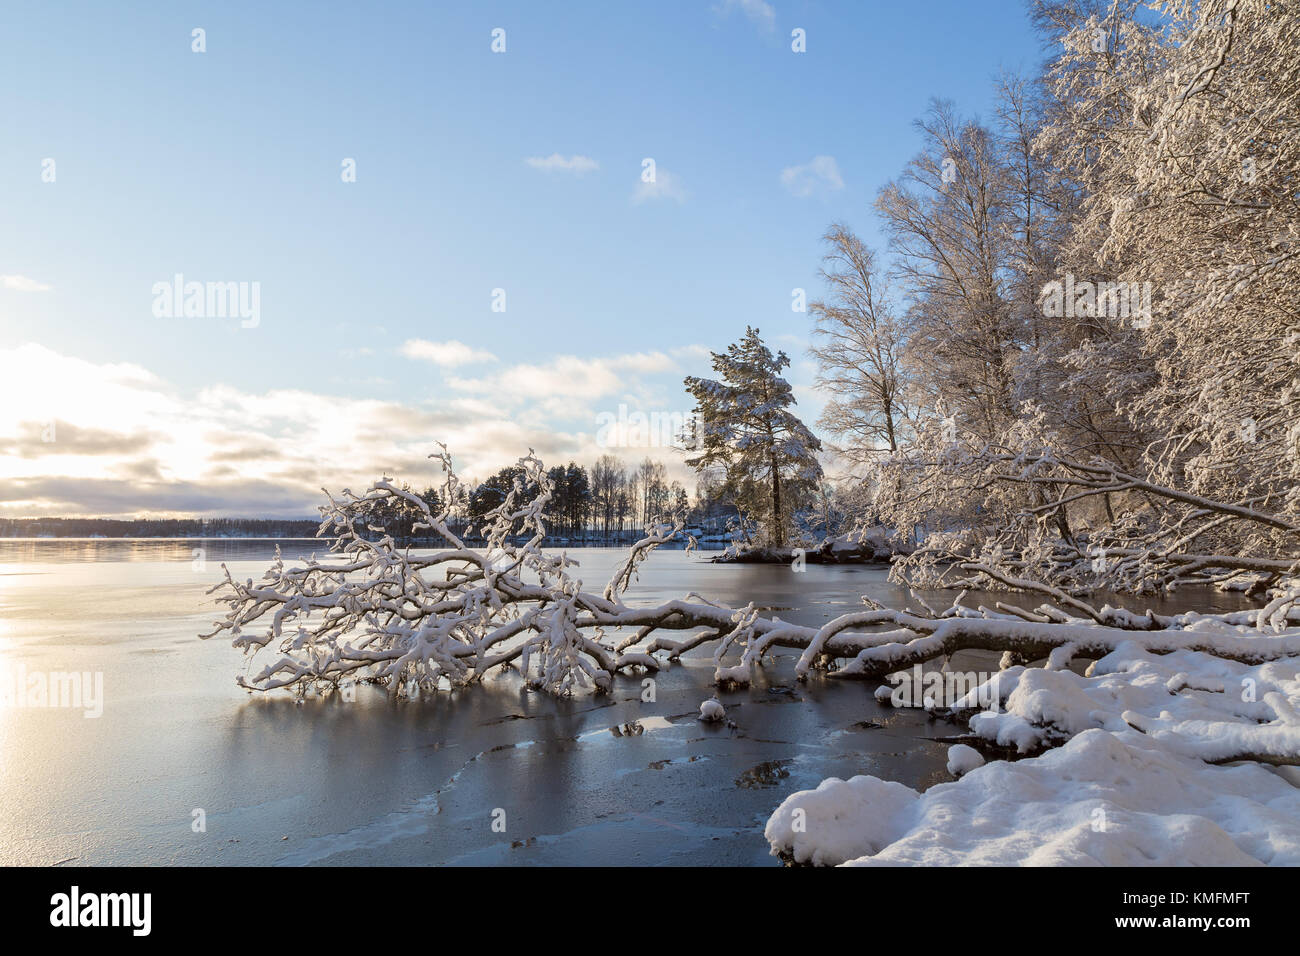 Beautiful view of snowy trees and frozen Lake Pyhäjärvi on a sunny day in the winter in Tampere, Finland. - Stock Image